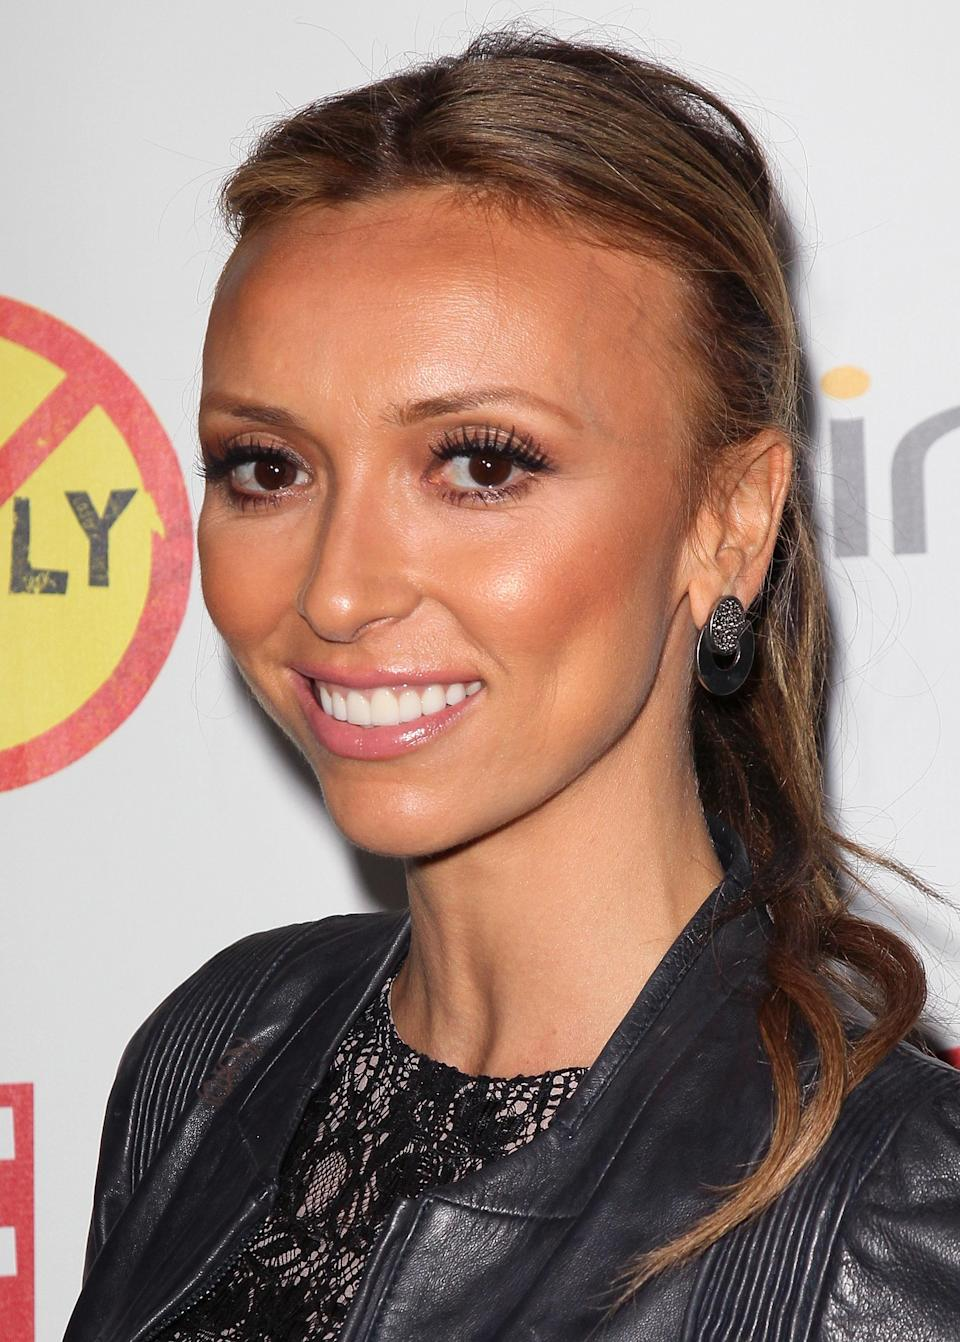 "<b>Giuliana Rancic:</b> ""Chills & tears watching coverage of #Aurora shootings. Praying for the innocent lives lost & those in hospital. What a tragedy. "" (Photo by David Livingston/Getty Images)"